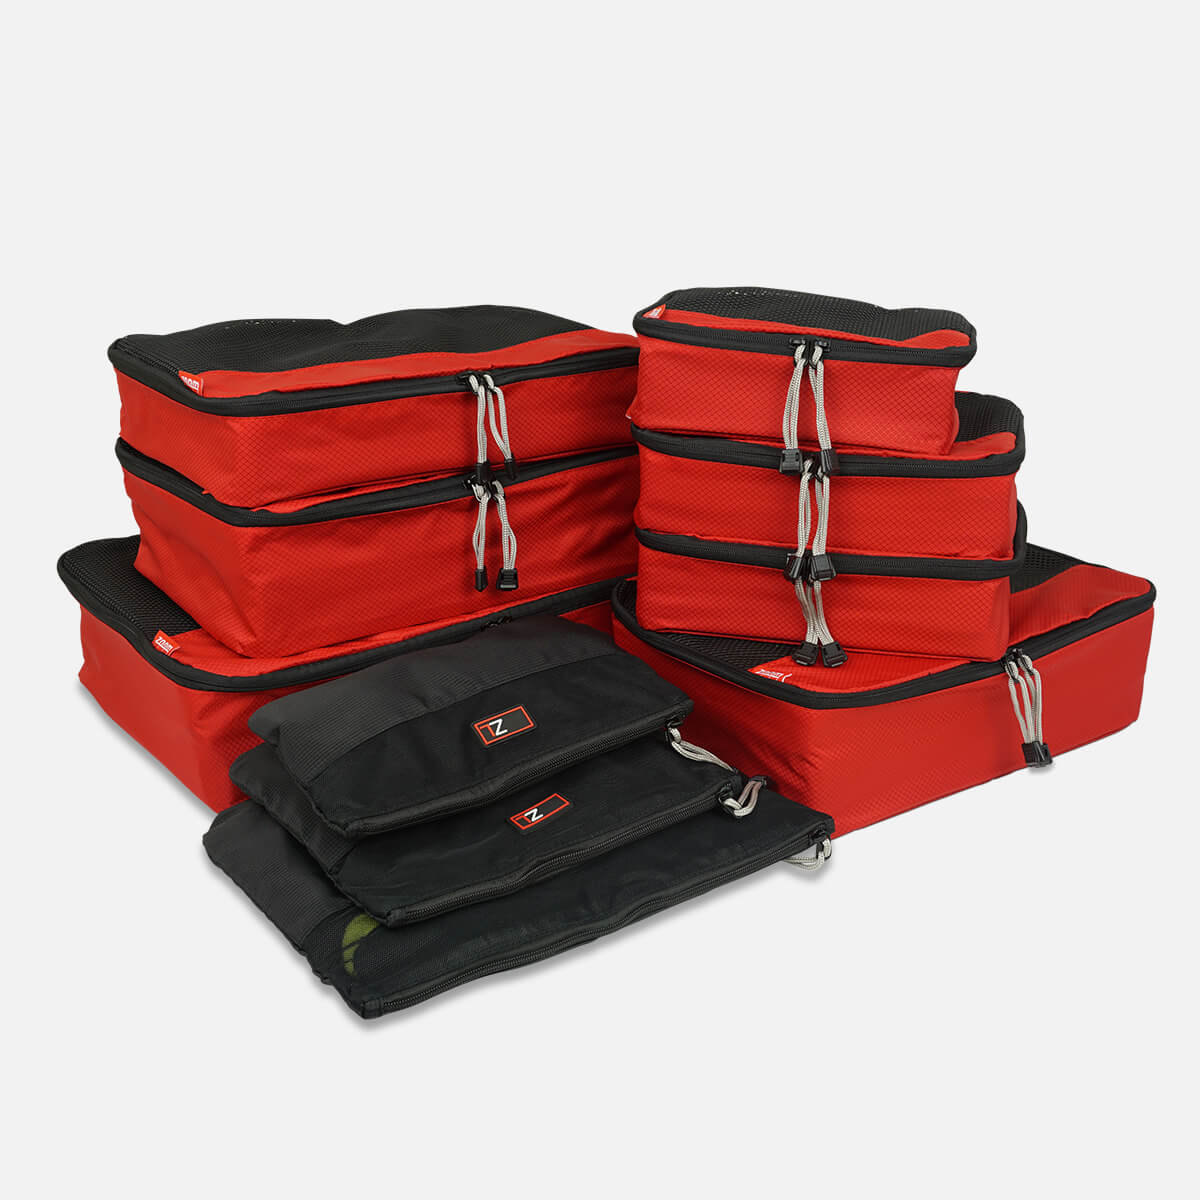 Organise Your luggage with travel packing cubes - 10 Pc Packing Cube Set in Red/Black